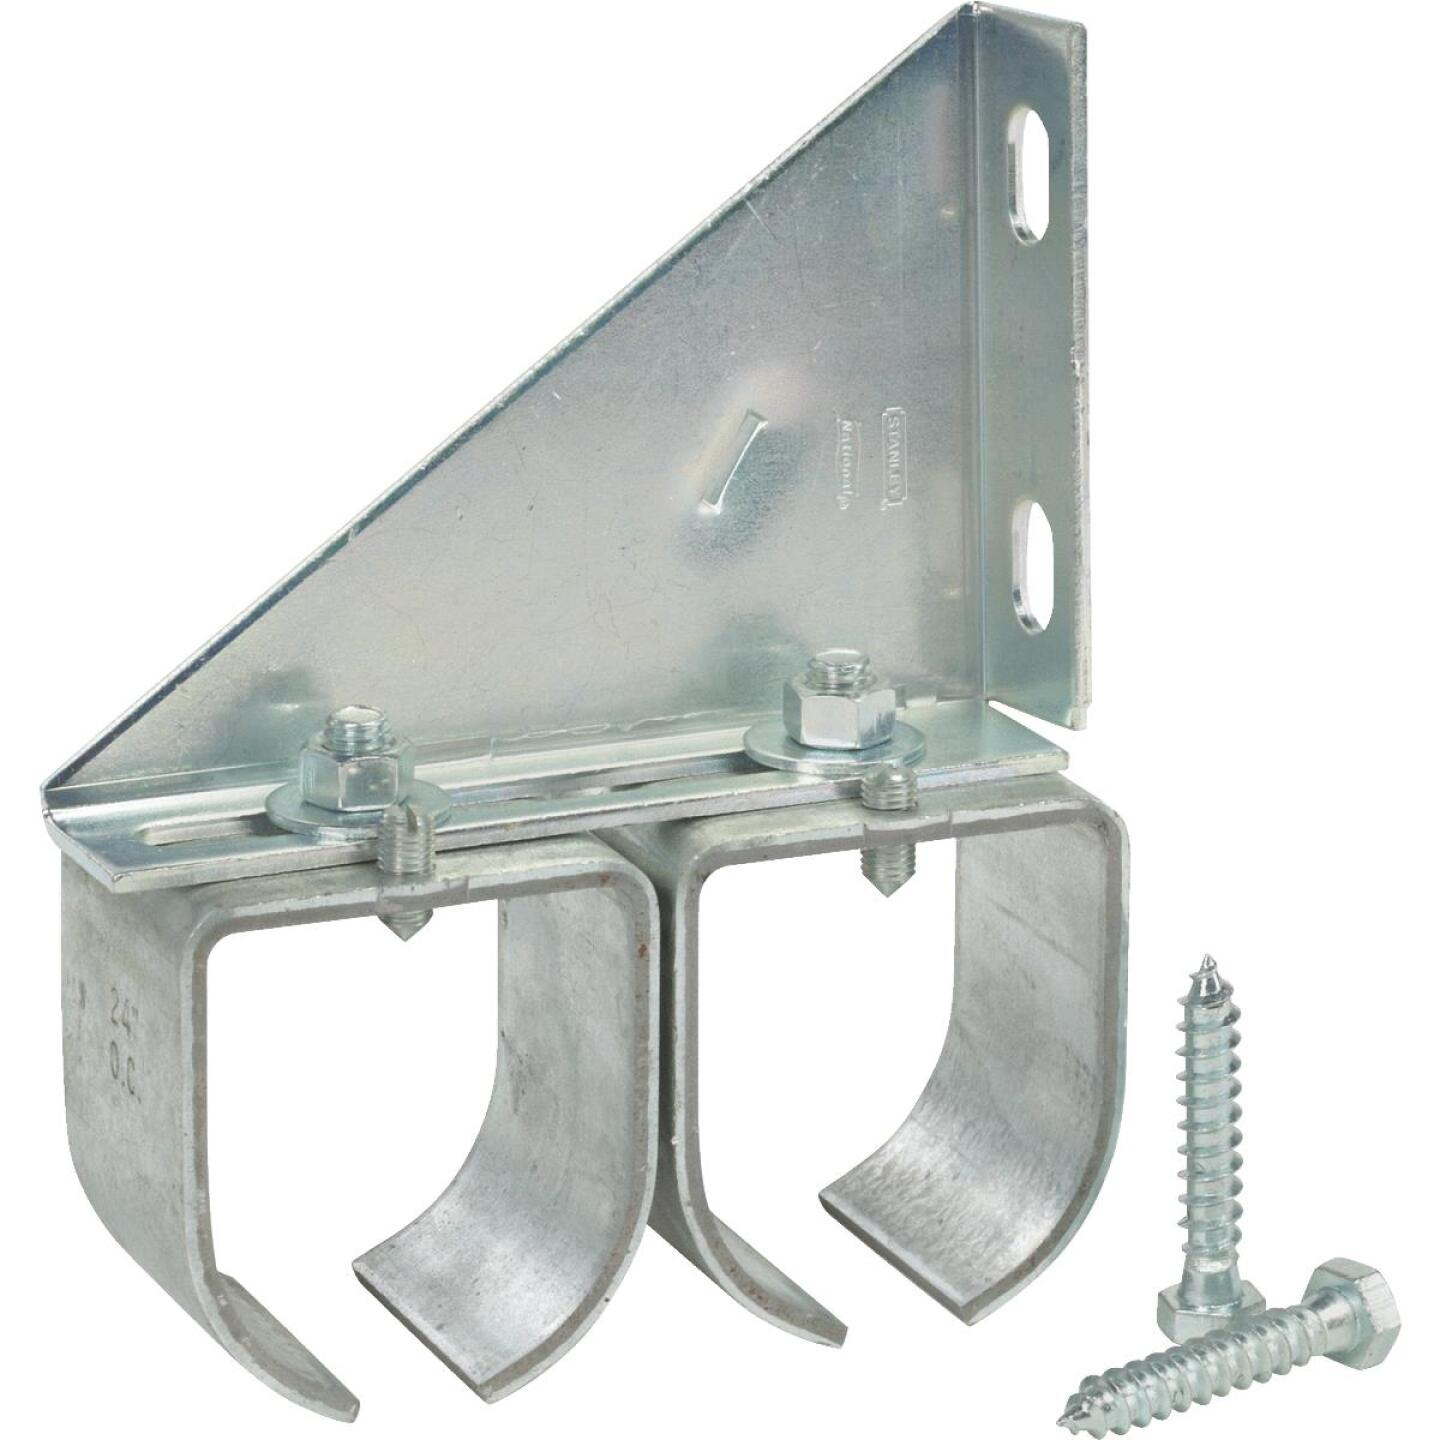 National Galvanized Double Splice Round Rail Barn Door Bracket Image 2